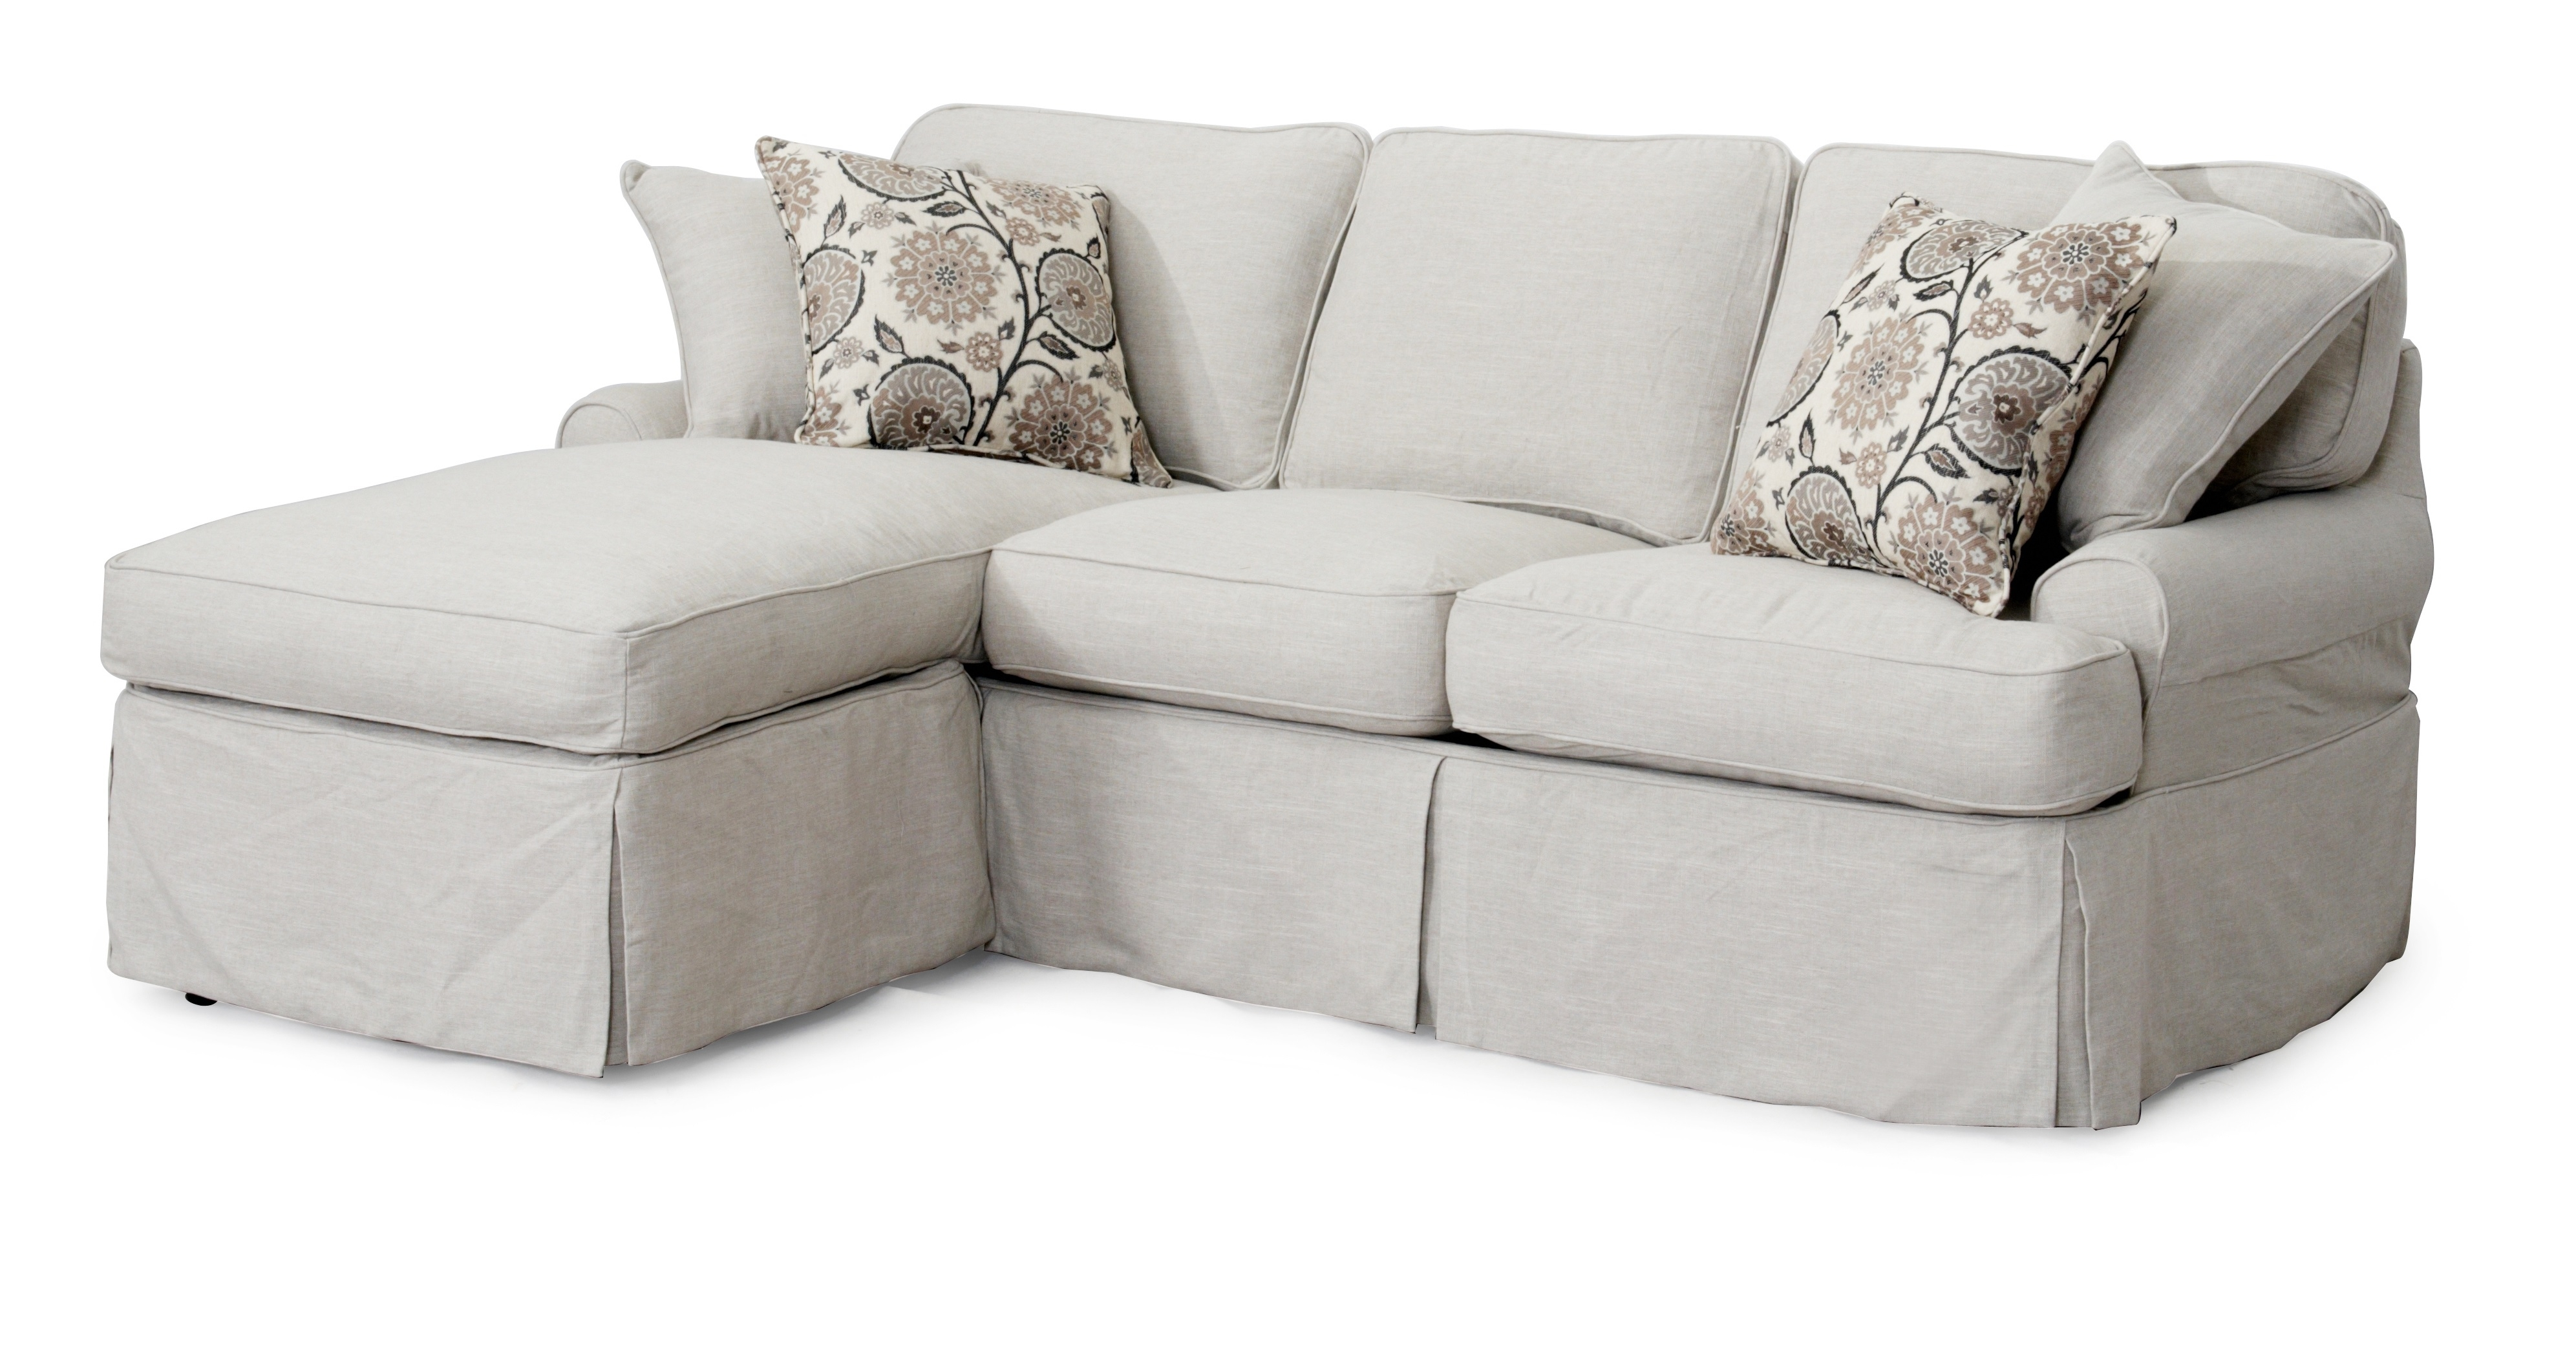 Furniture Perfect Living Room With Sofa Slipcovers Walmart For Inside Slipcovers For Sofas And Chairs (Image 5 of 15)